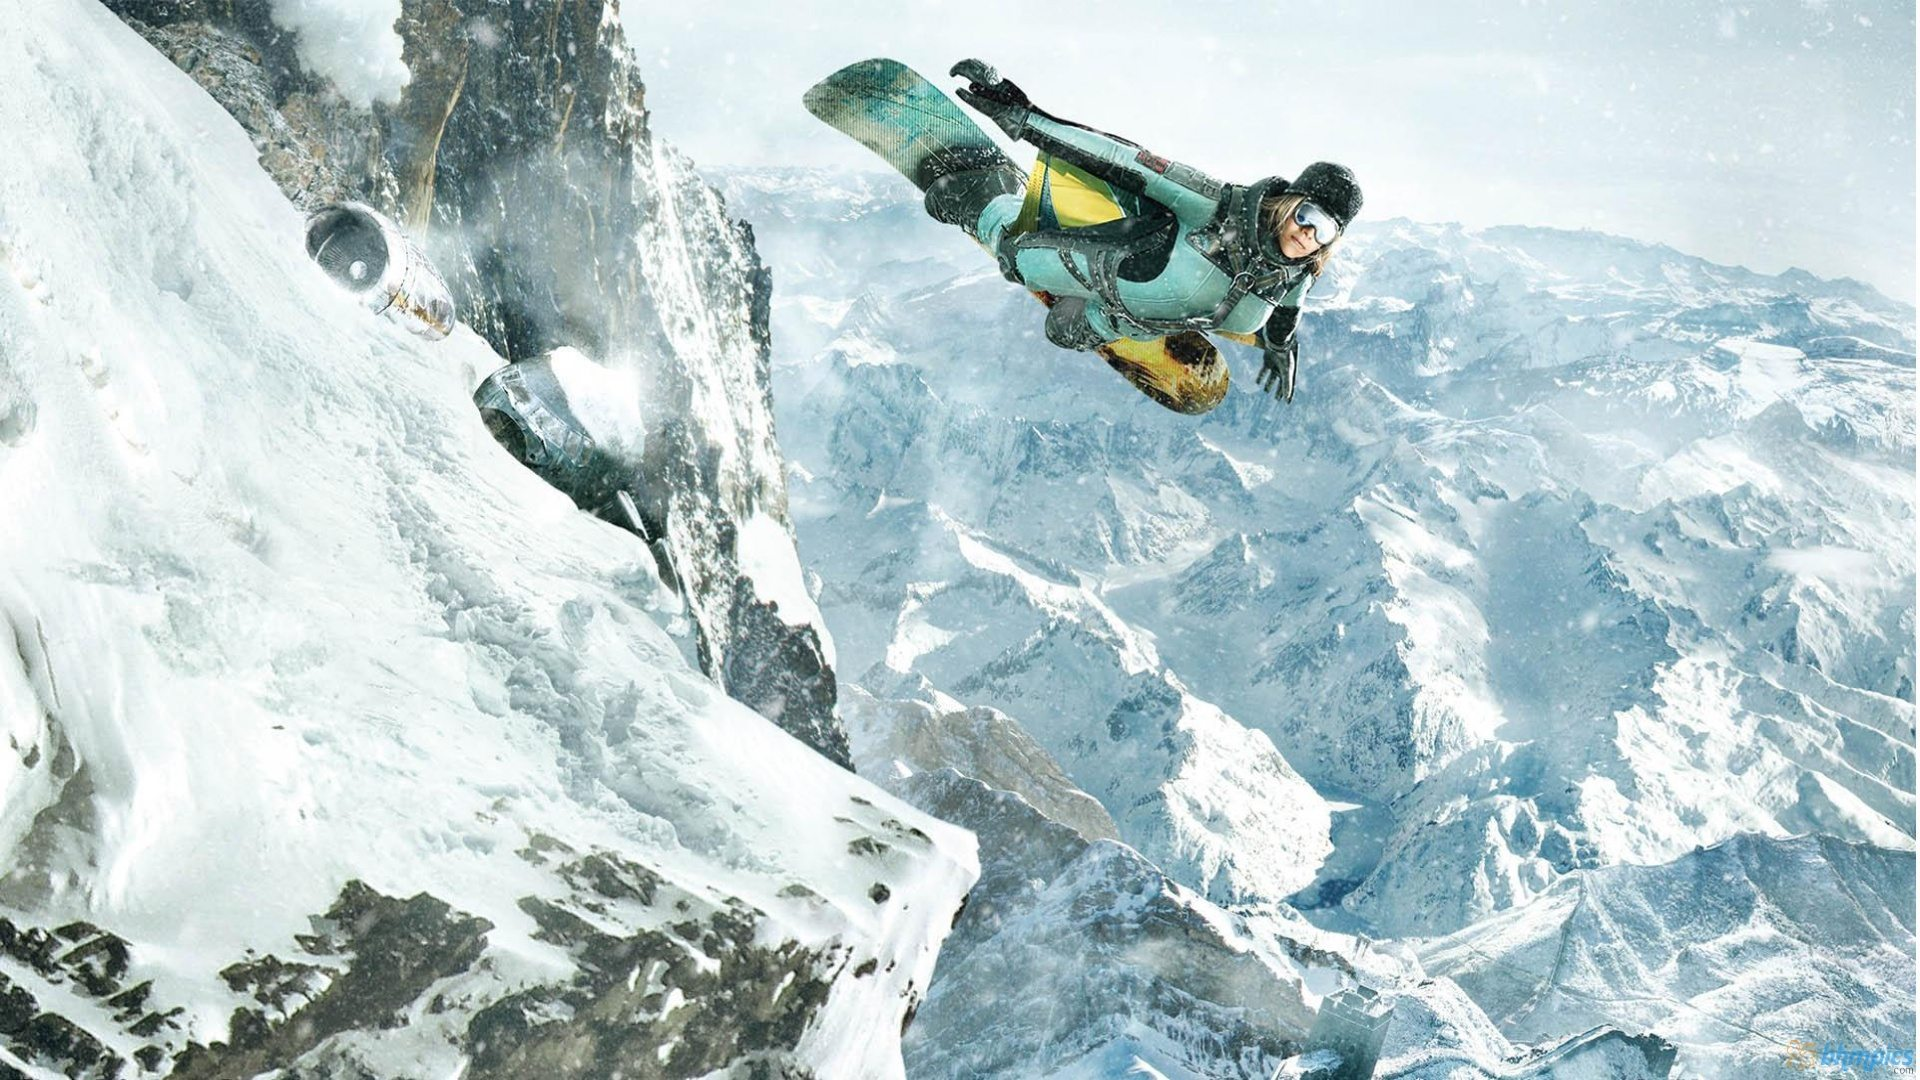 ssx-297791